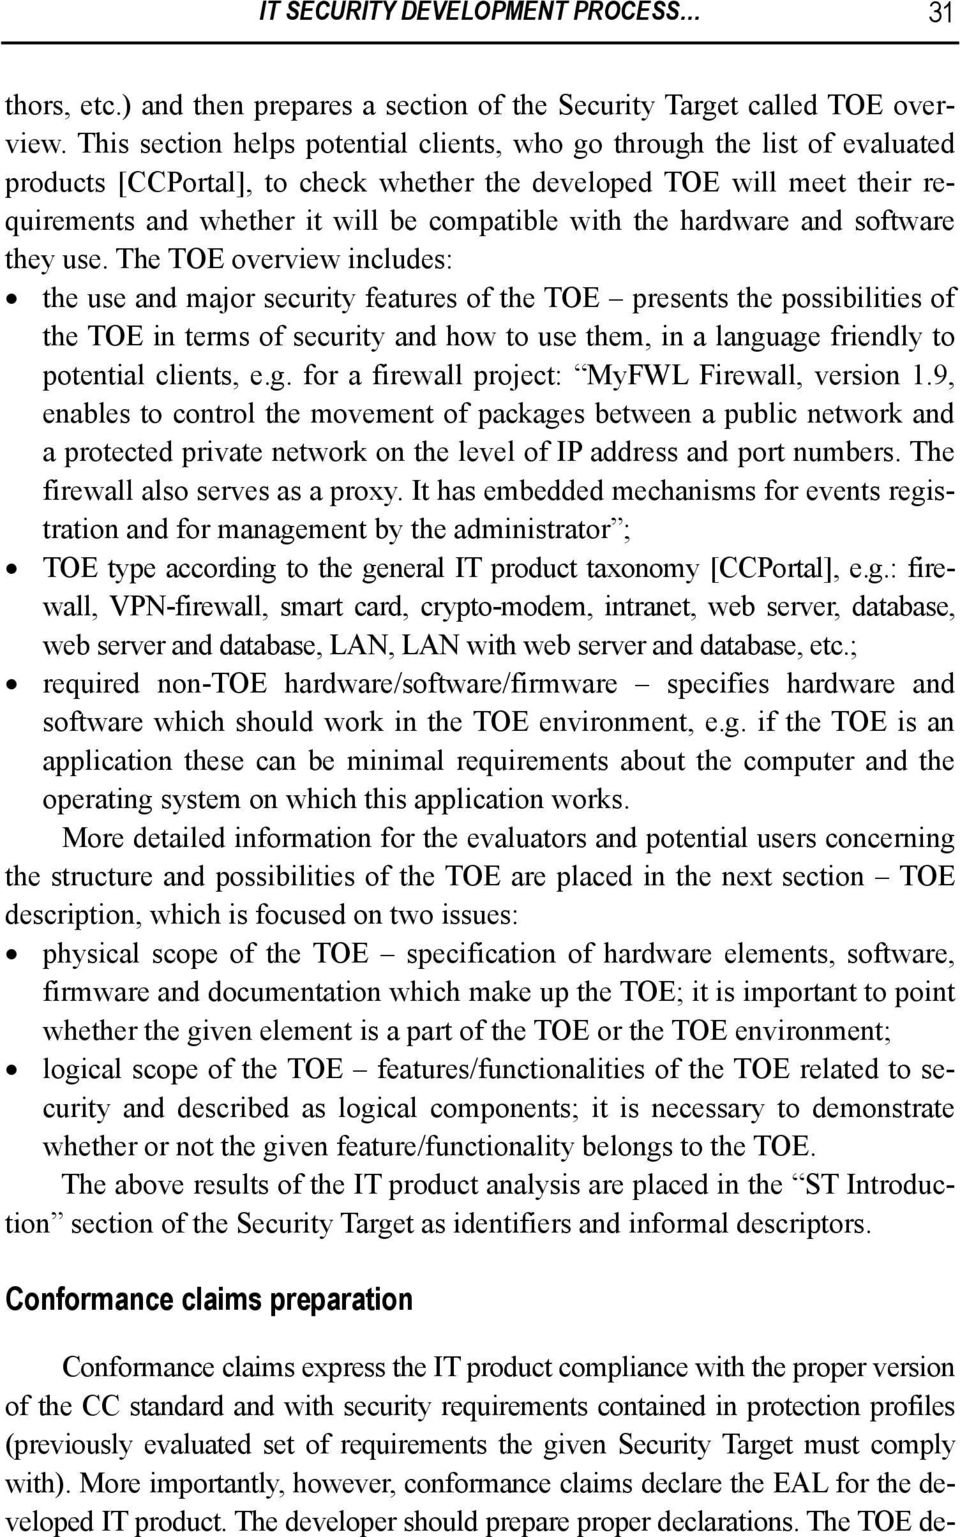 software y use. The TOE overview includes: use and major security features of TOE presents possibilities of TOE in terms of security and how to use m, in a langu